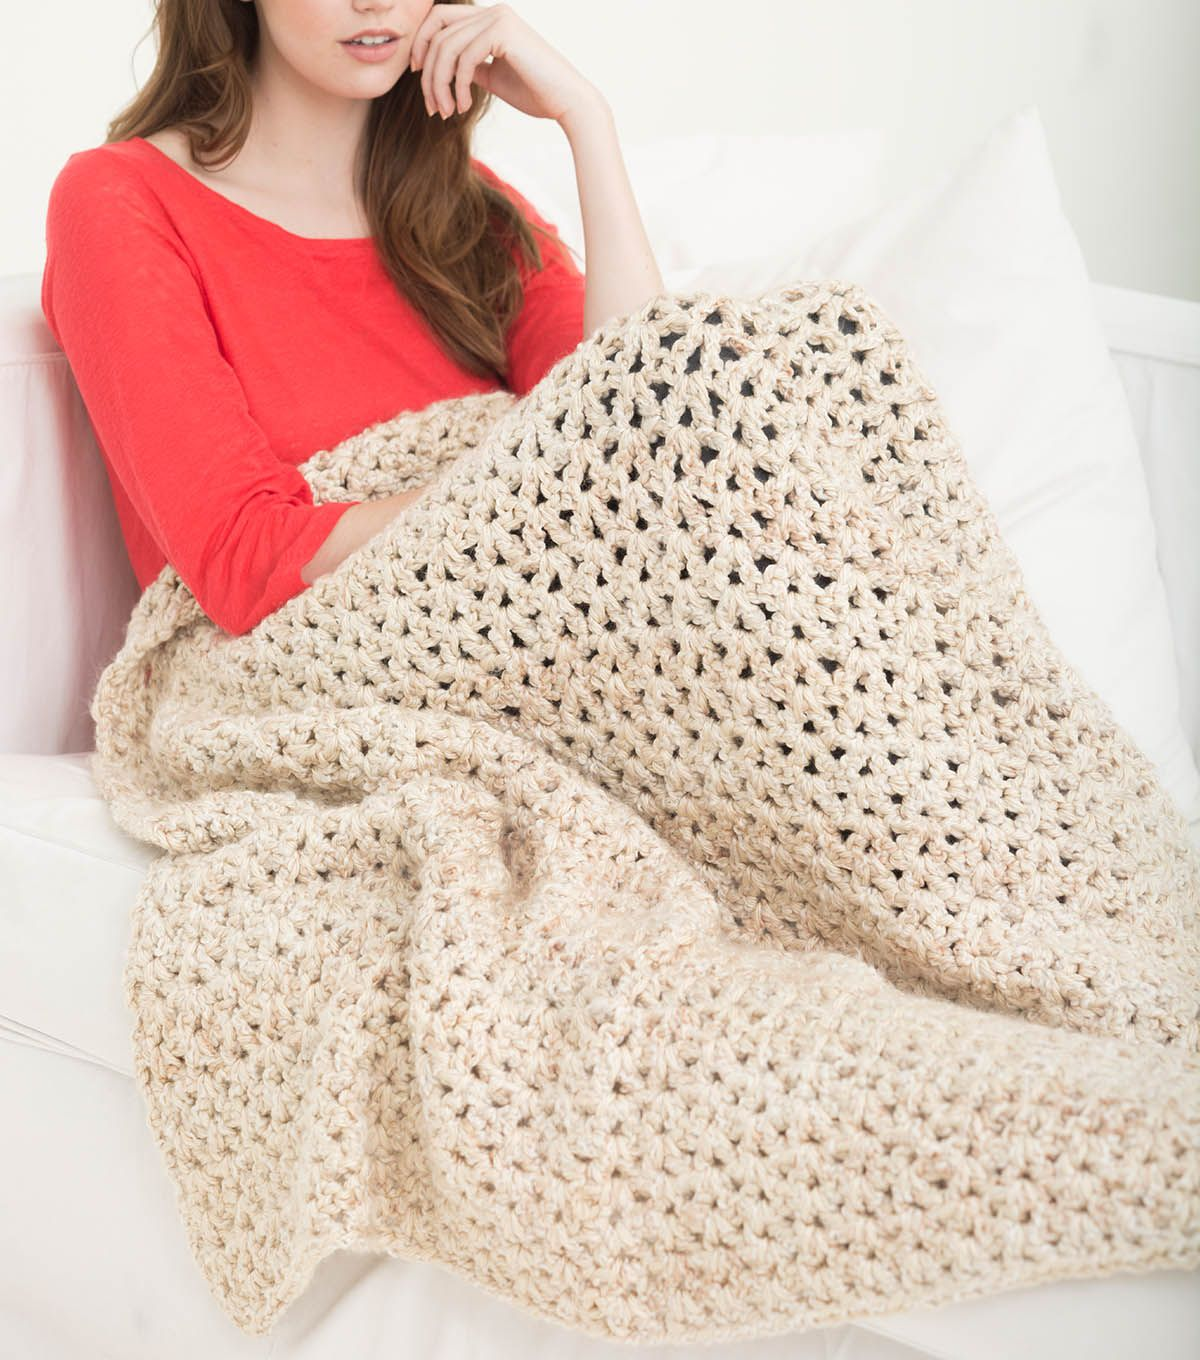 How to Crochet A 5 ½ Hour Neutral Tones Afghan | Knit & Crochet ...